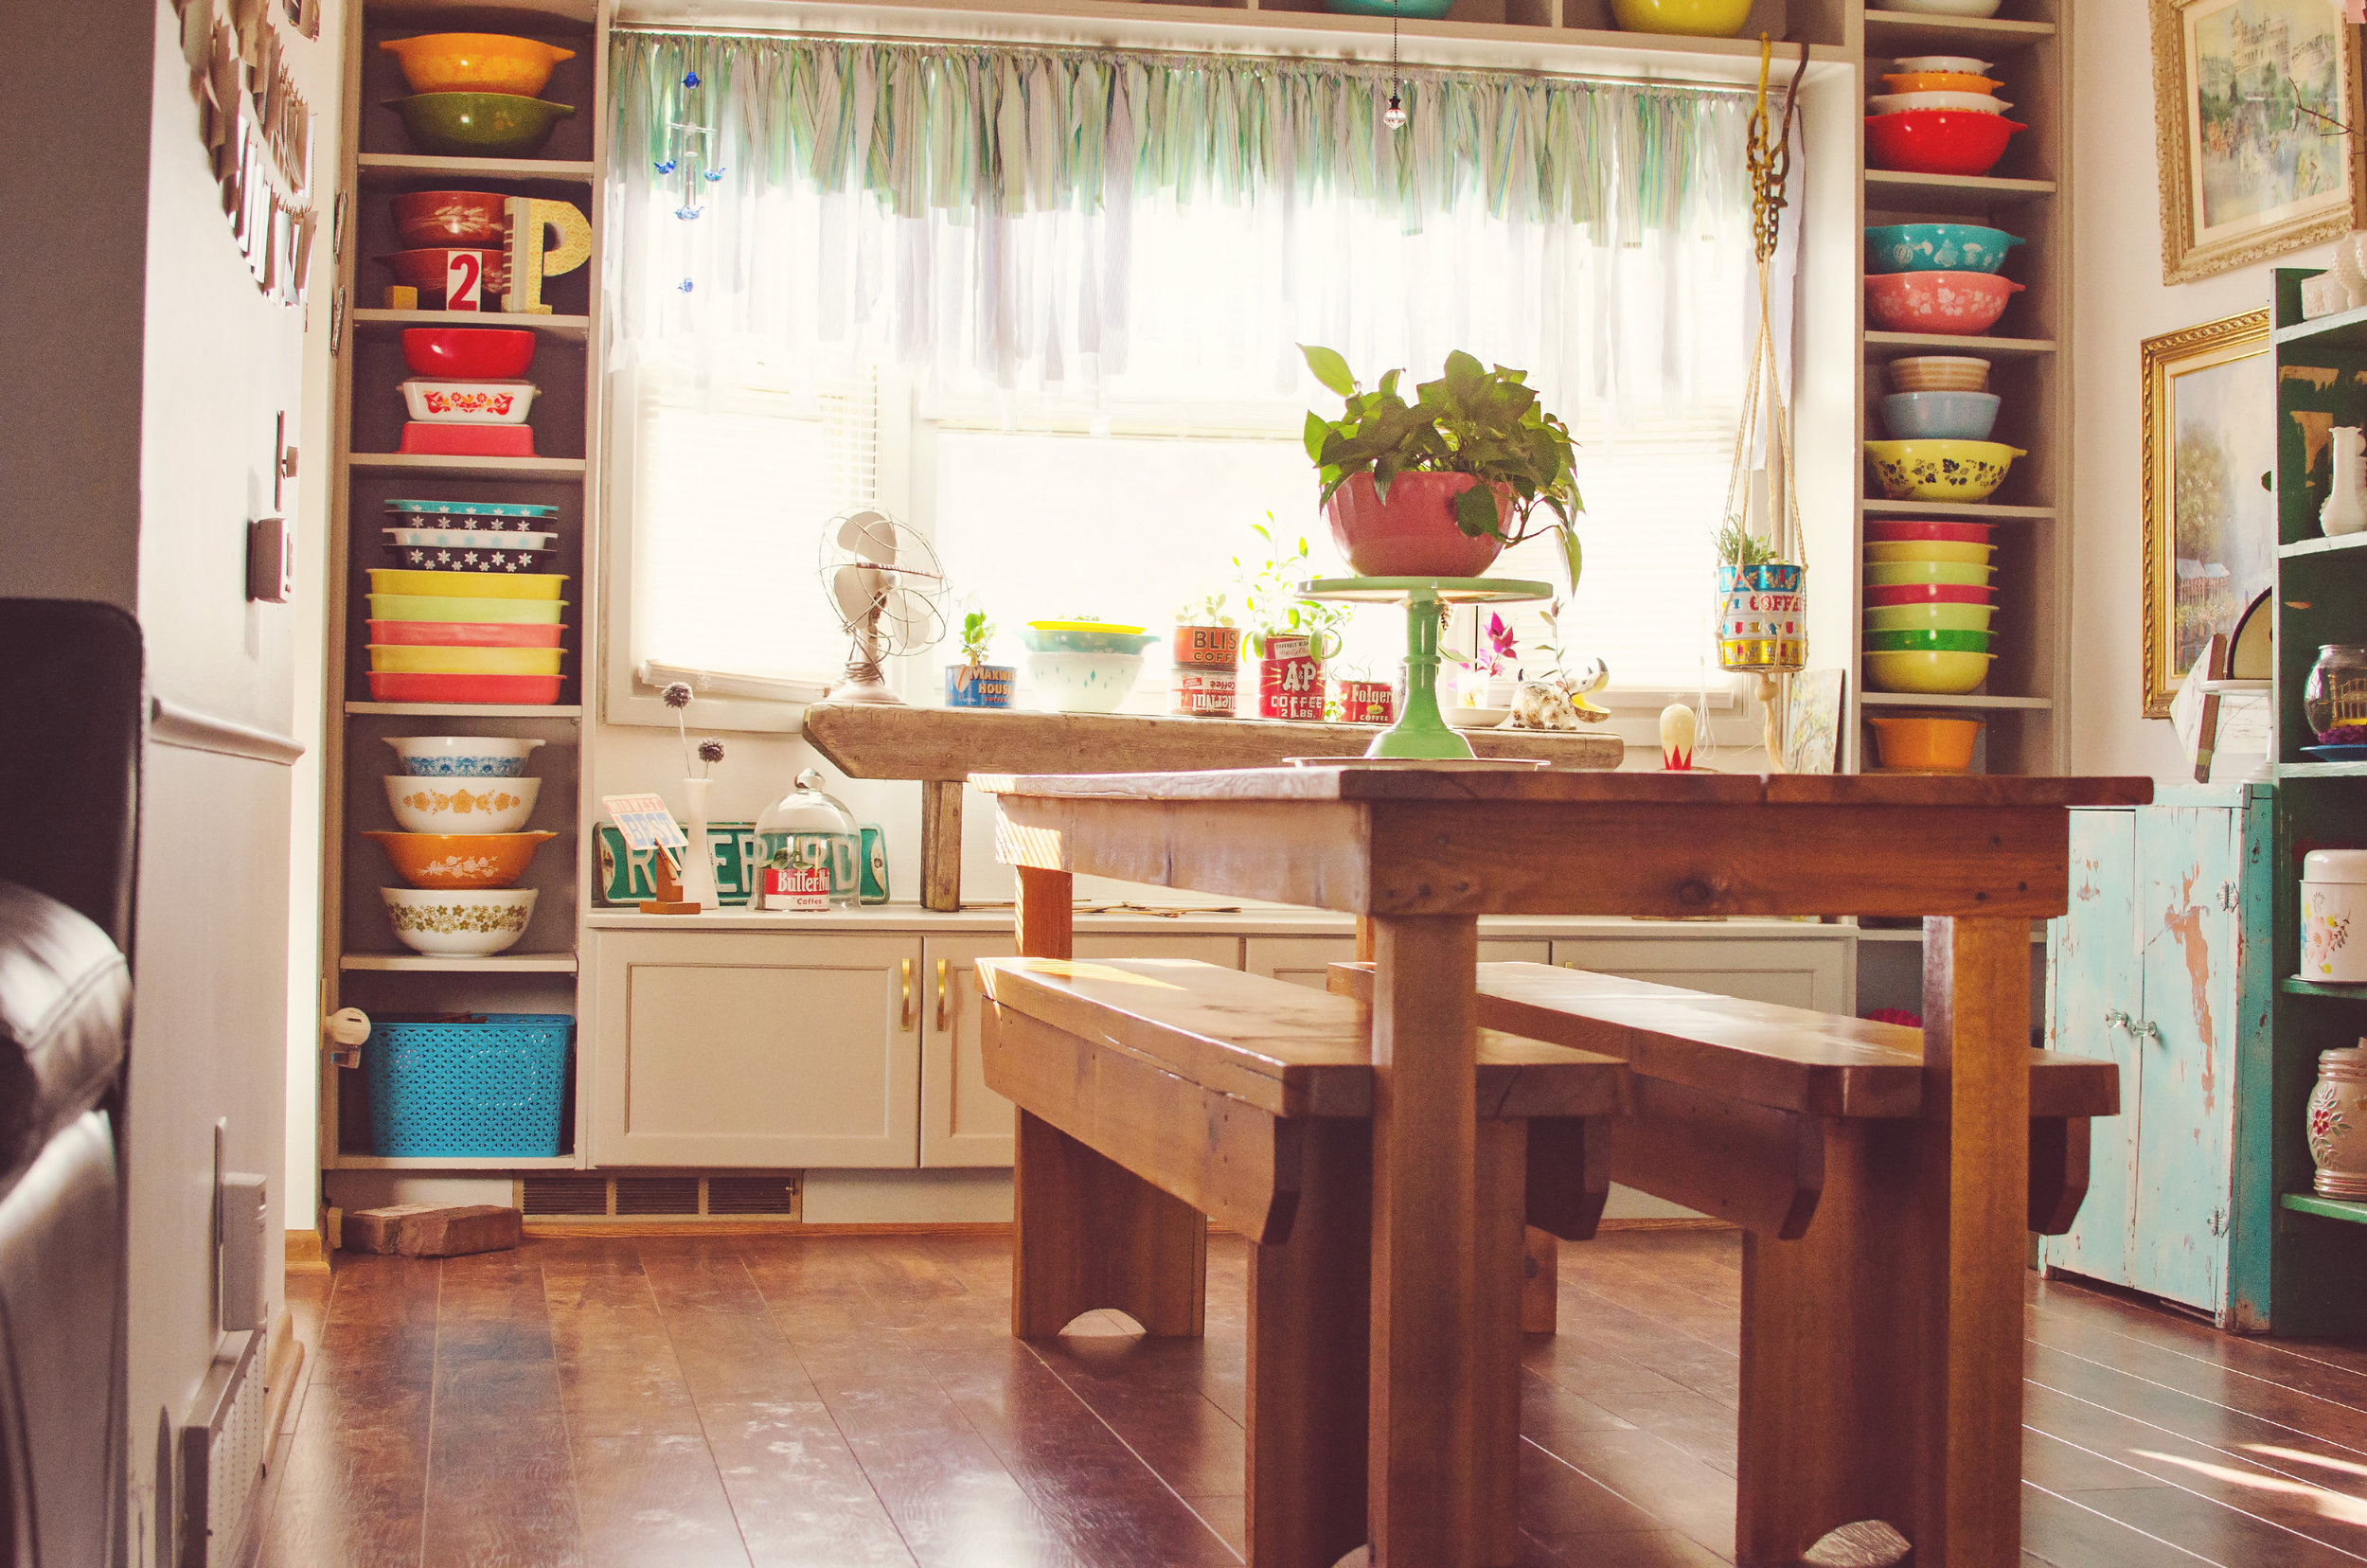 Dining room design with floor to ceiling shelving of vintage Pyrex. | hprallandco.com